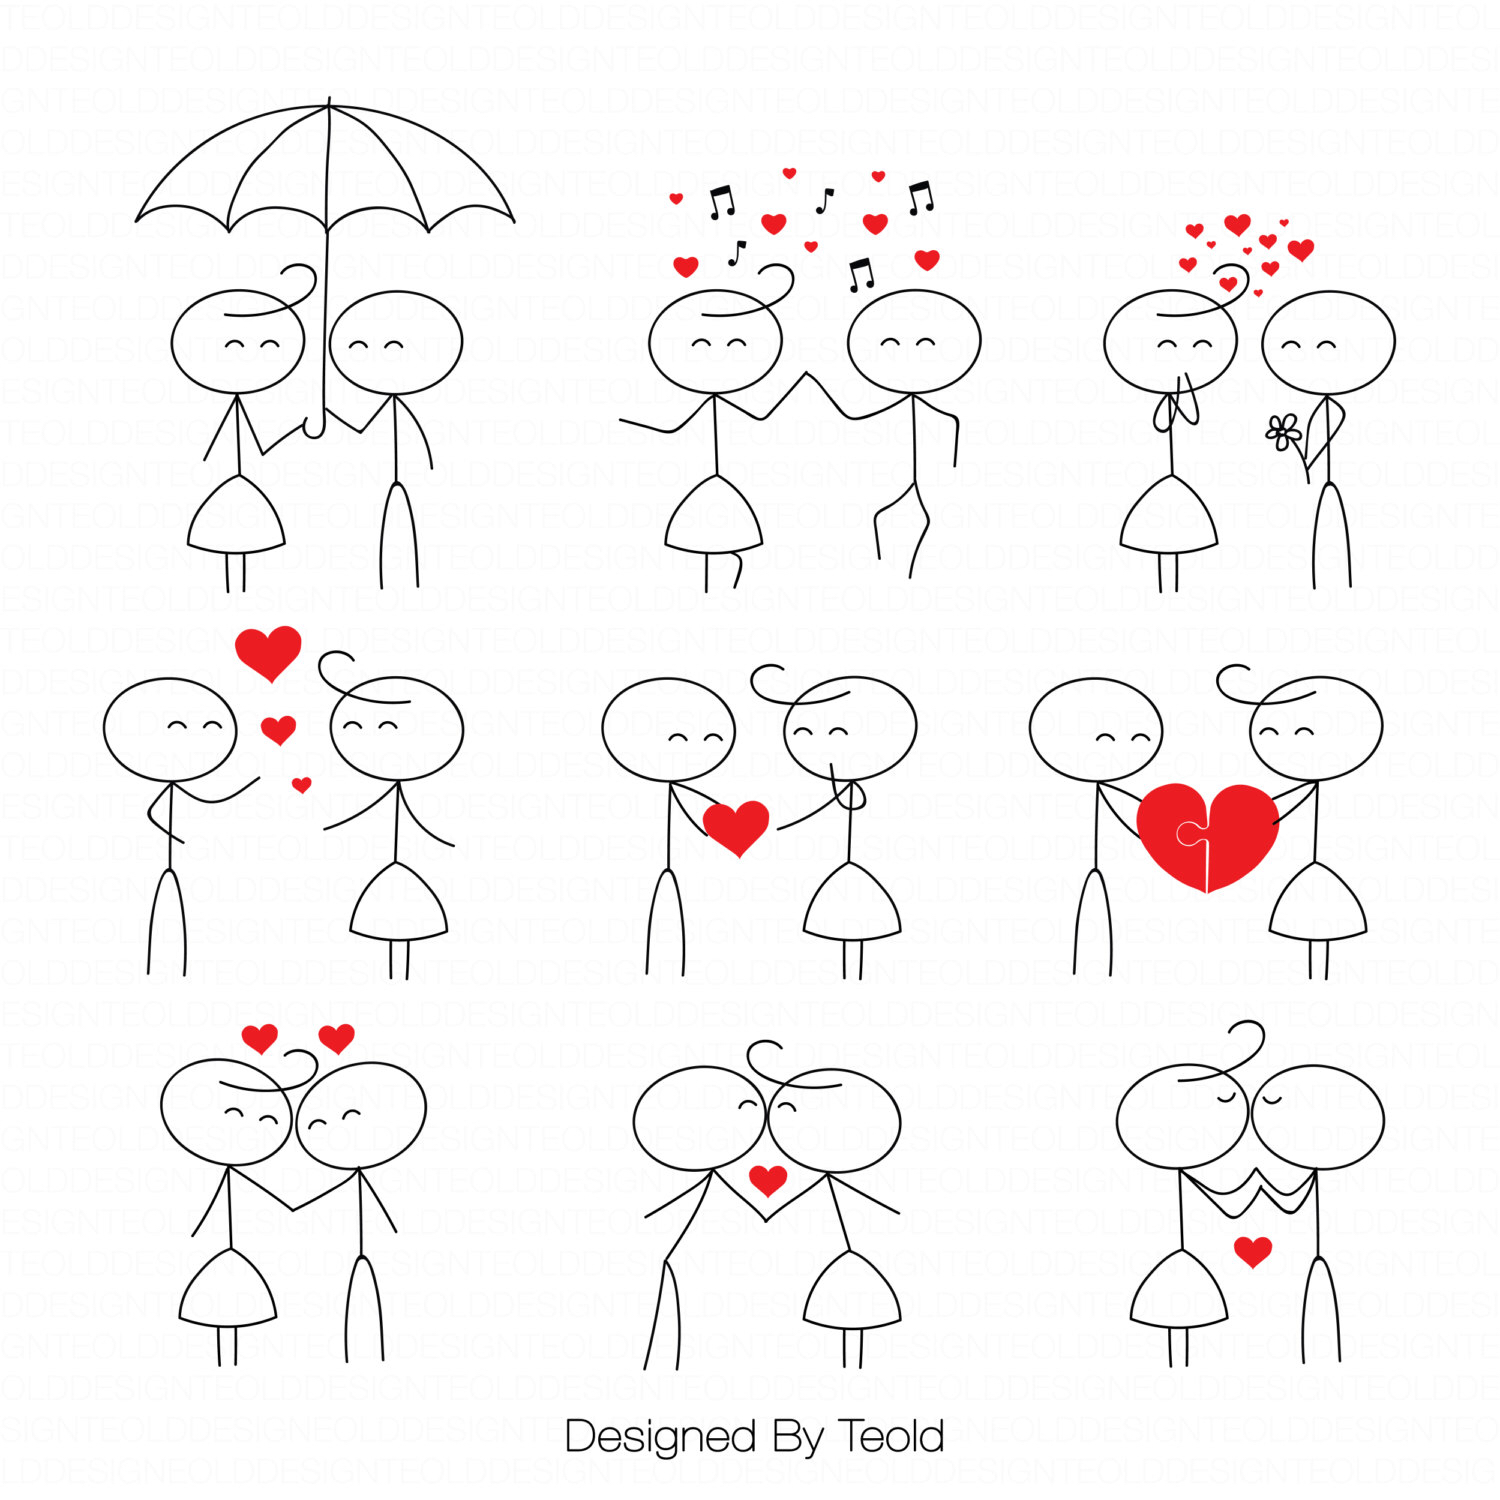 Stick figure people love wedding couple meeting cute family.